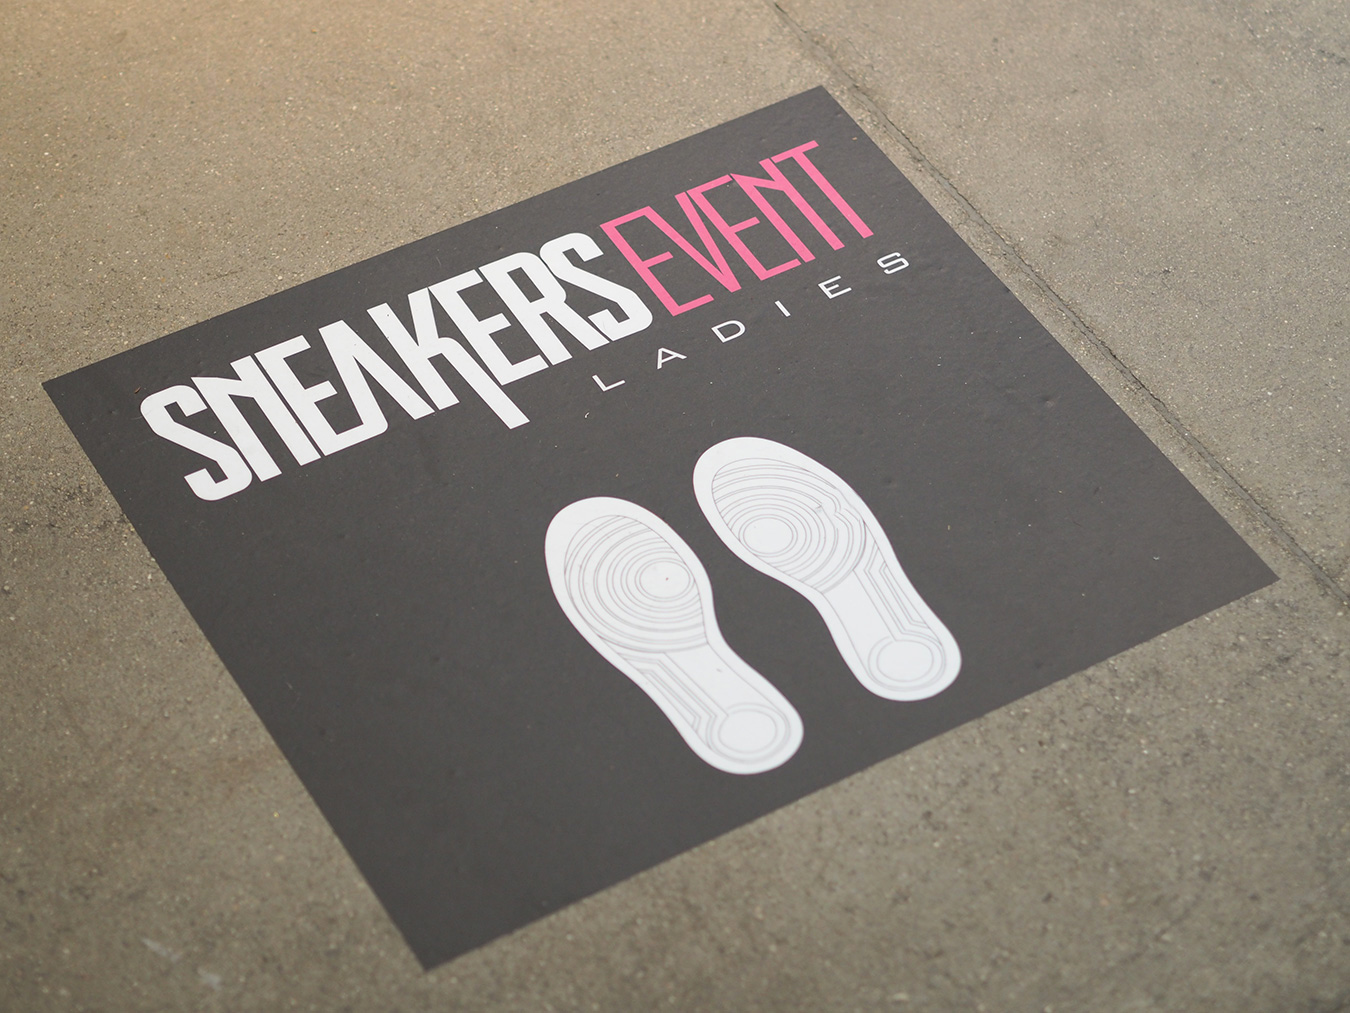 Sneakers Event Paris Ladies